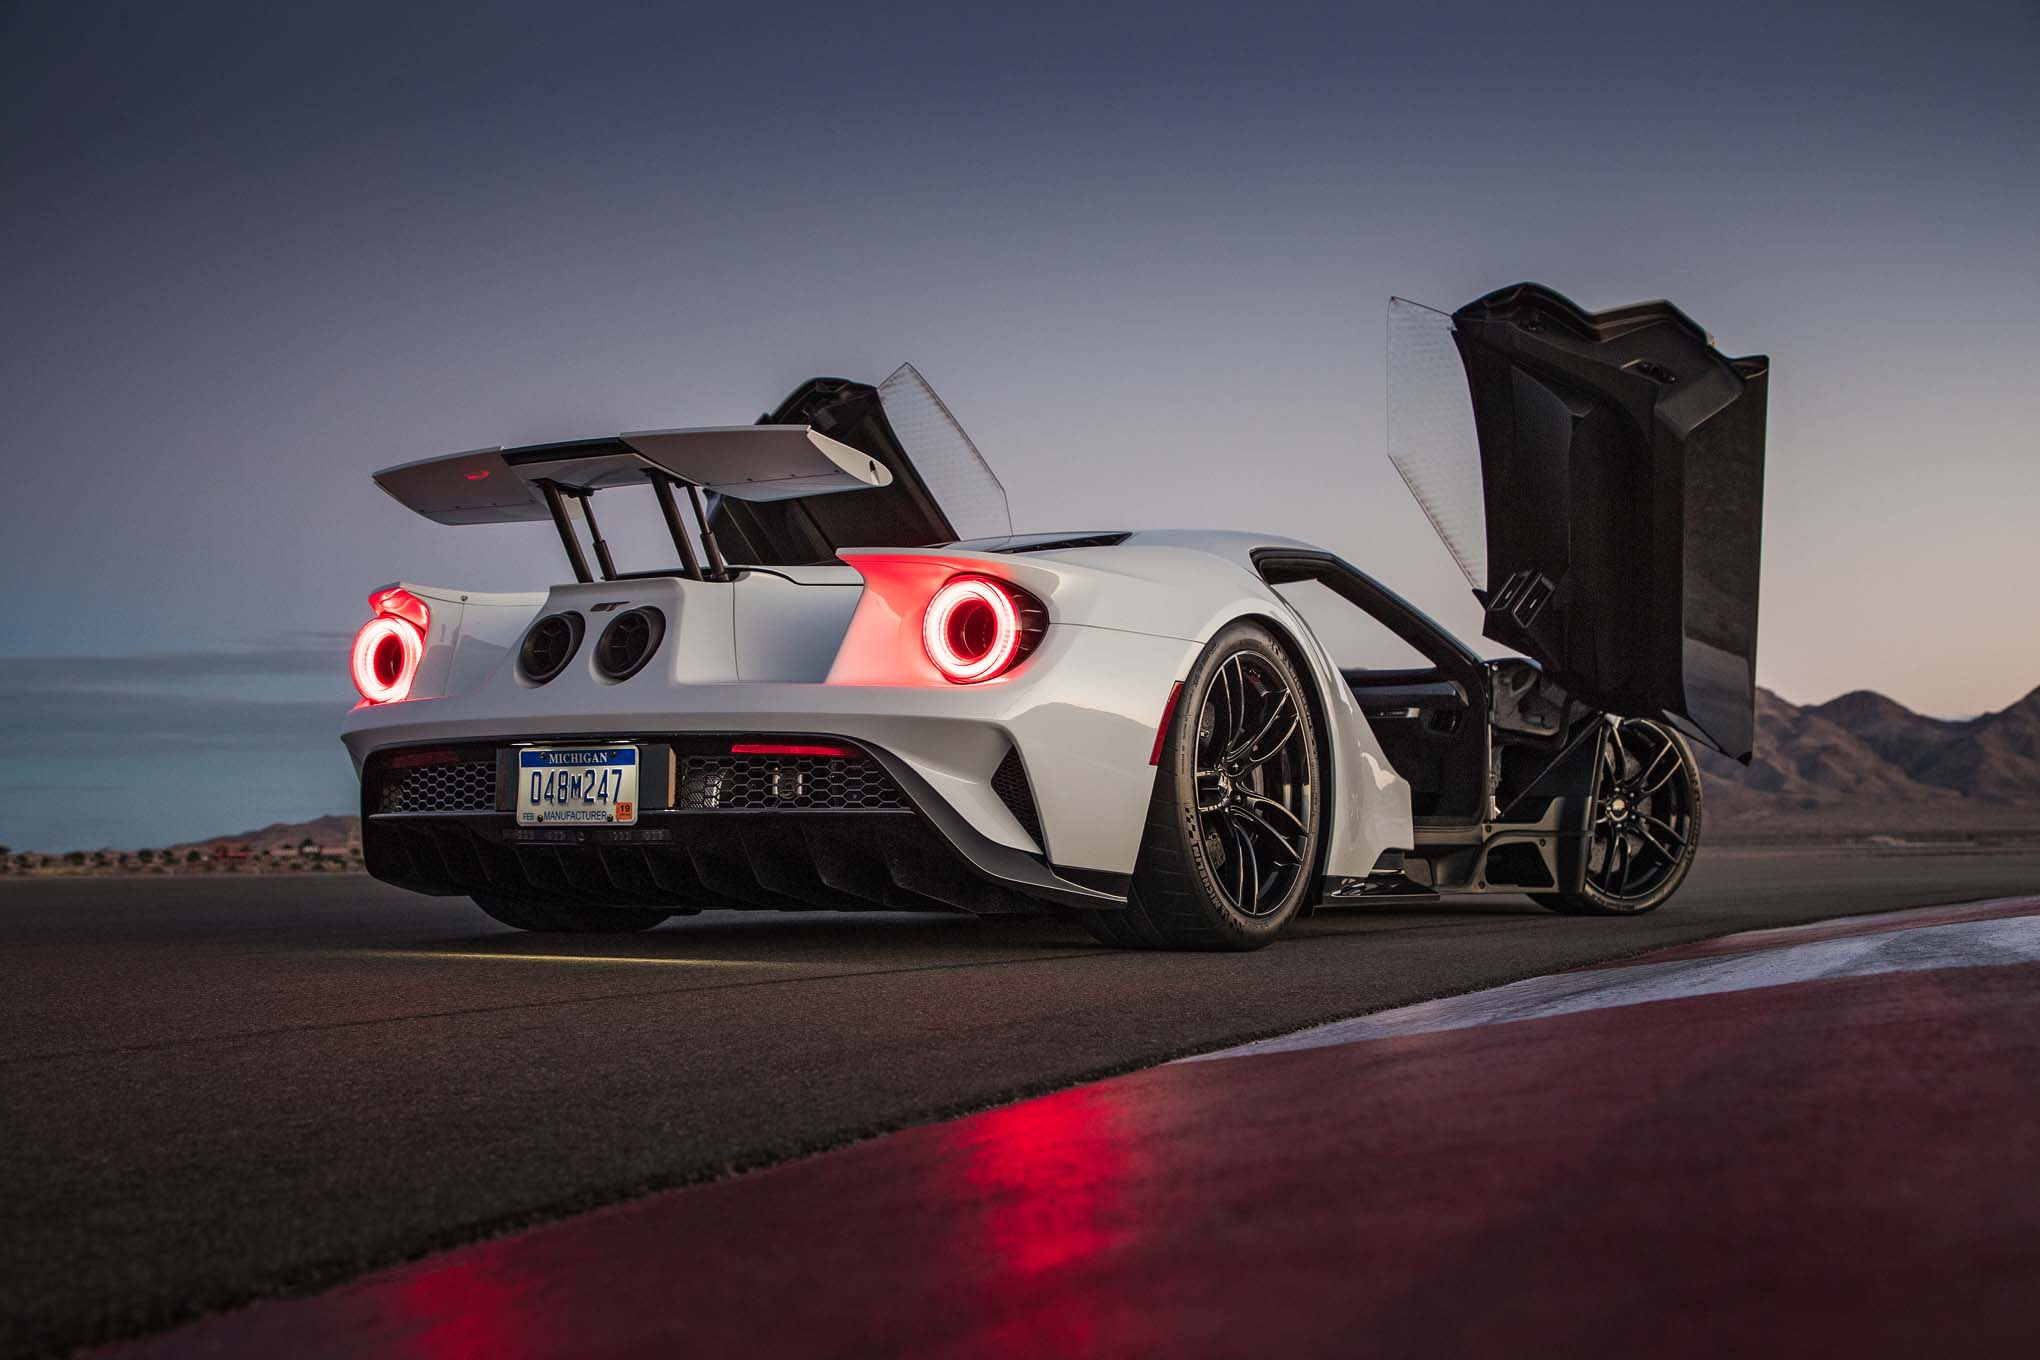 We Know The Ecoboost V Will Be Thirsty In The  Ford Gt However We Still Dont Know Exactly How Powerful Itll Be Moto Networks